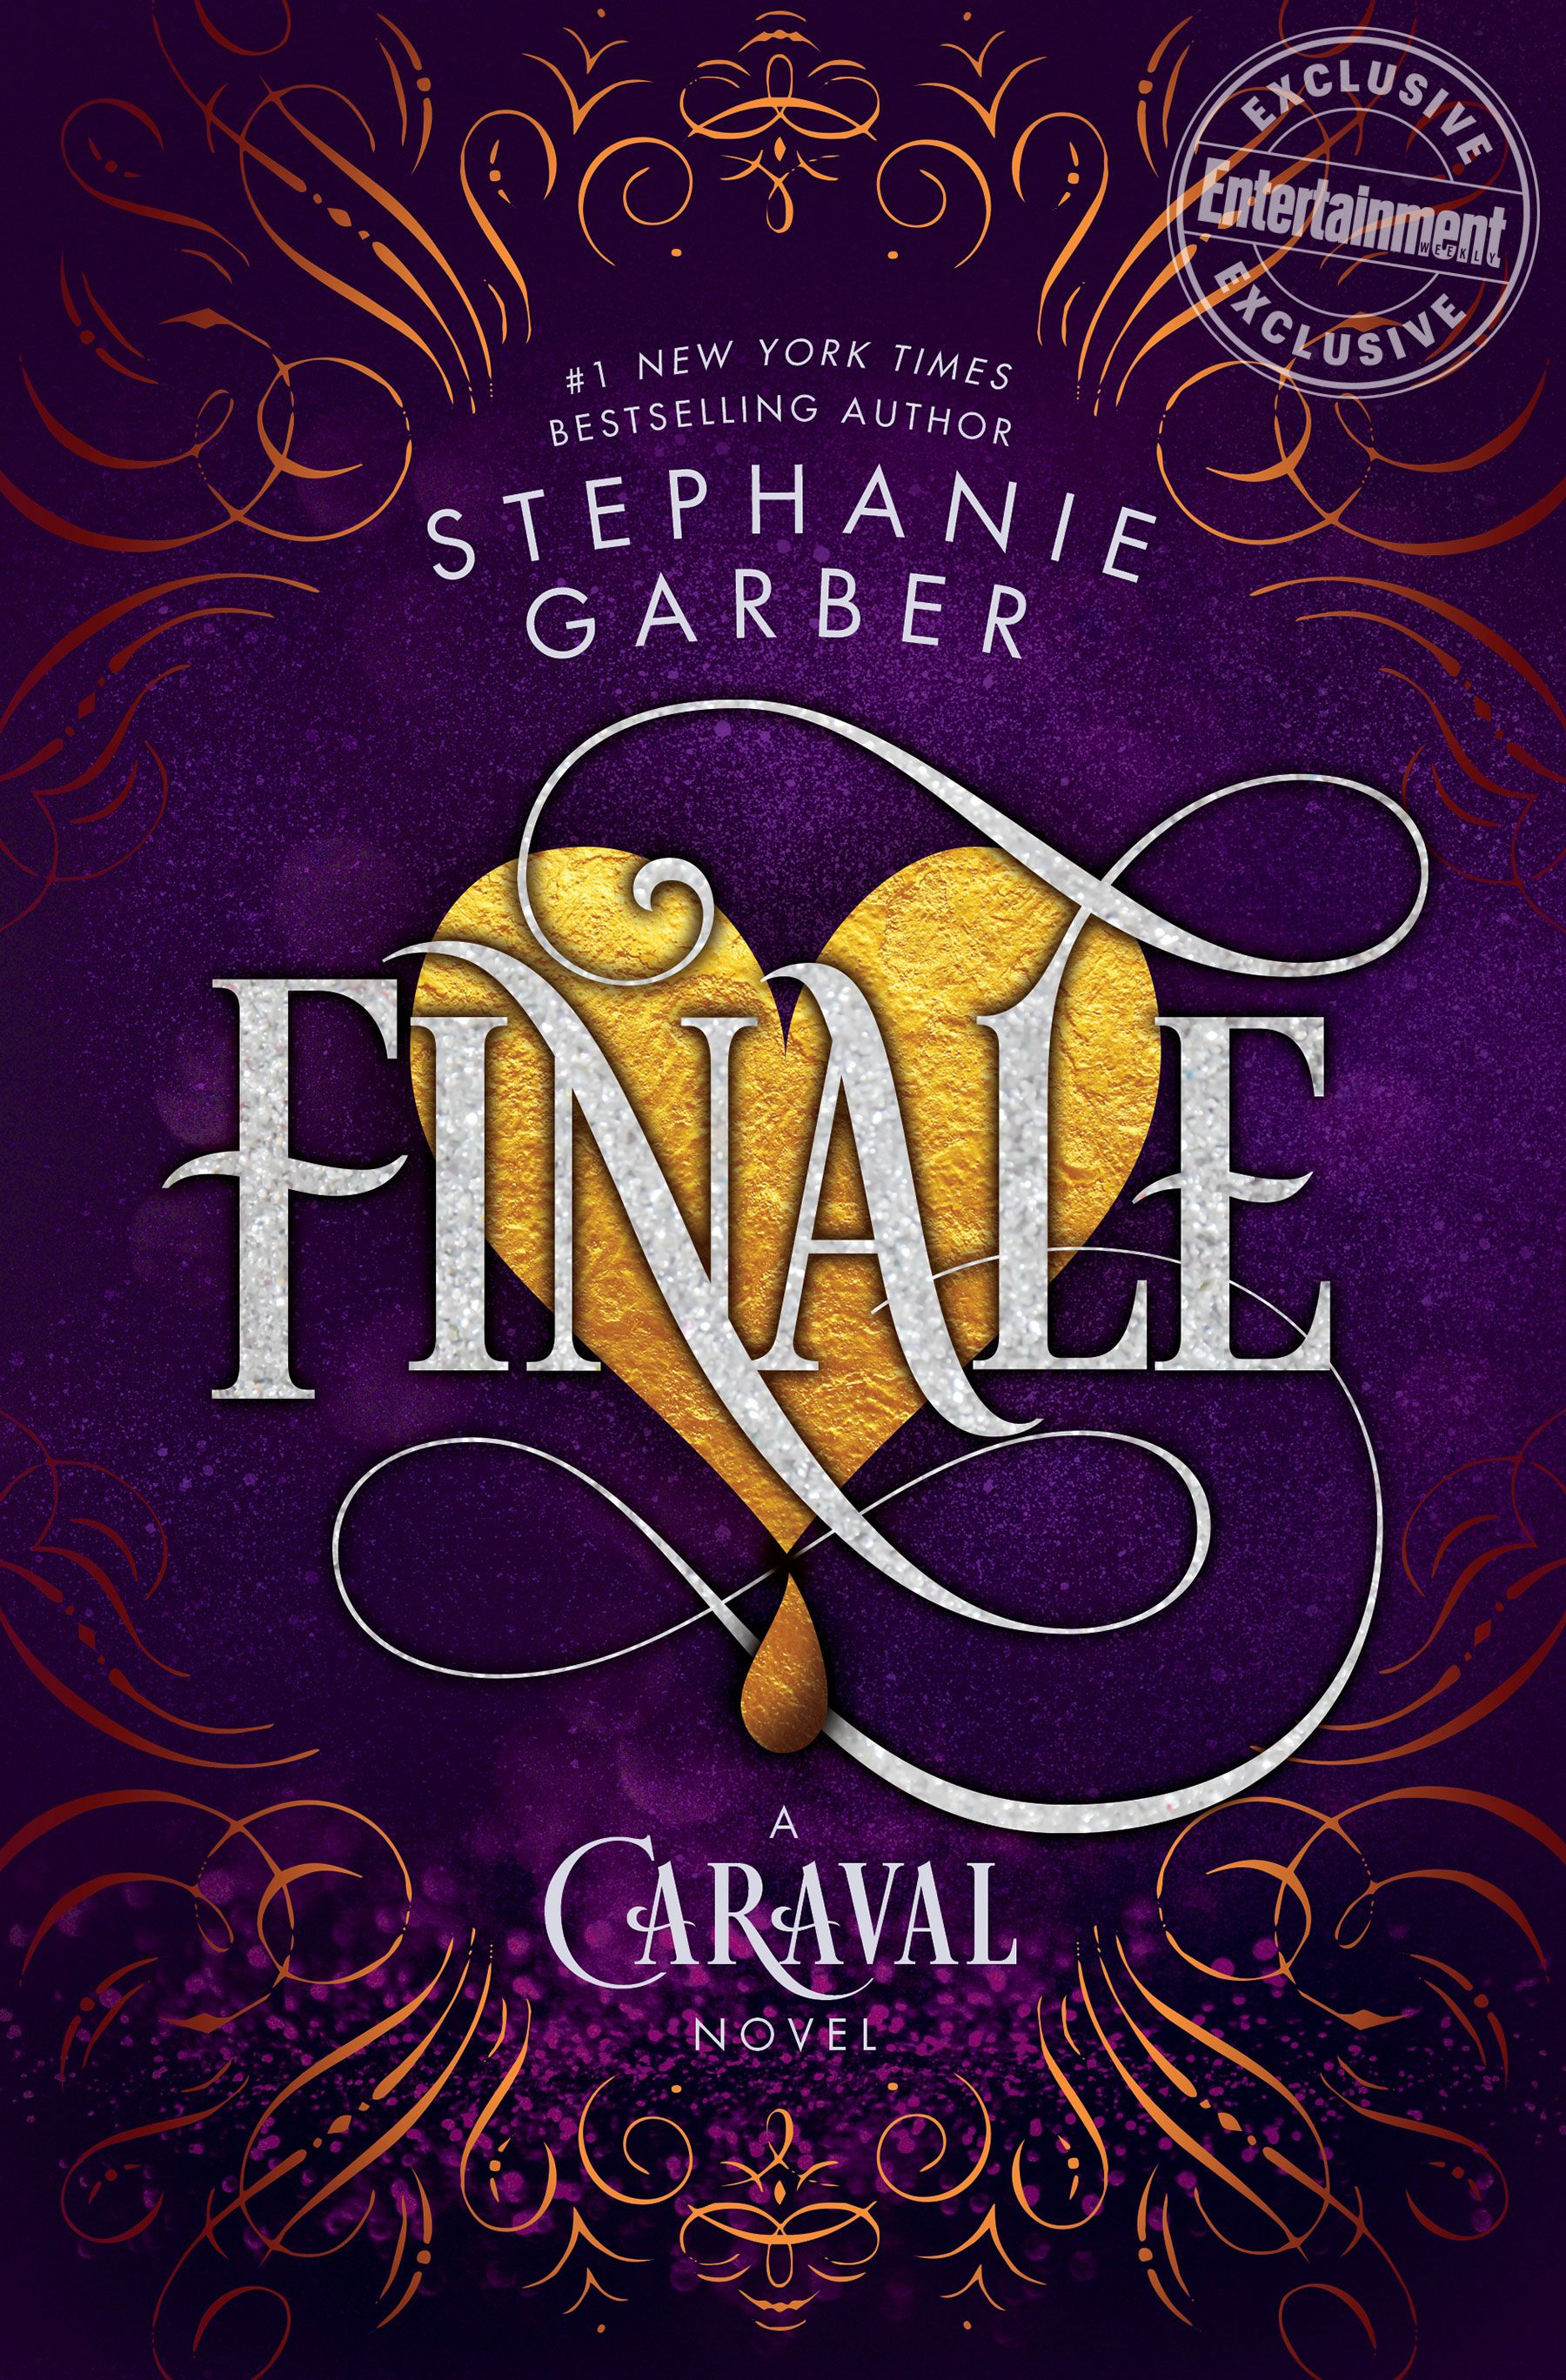 Exclusive stephanie garber previews her epic caraval